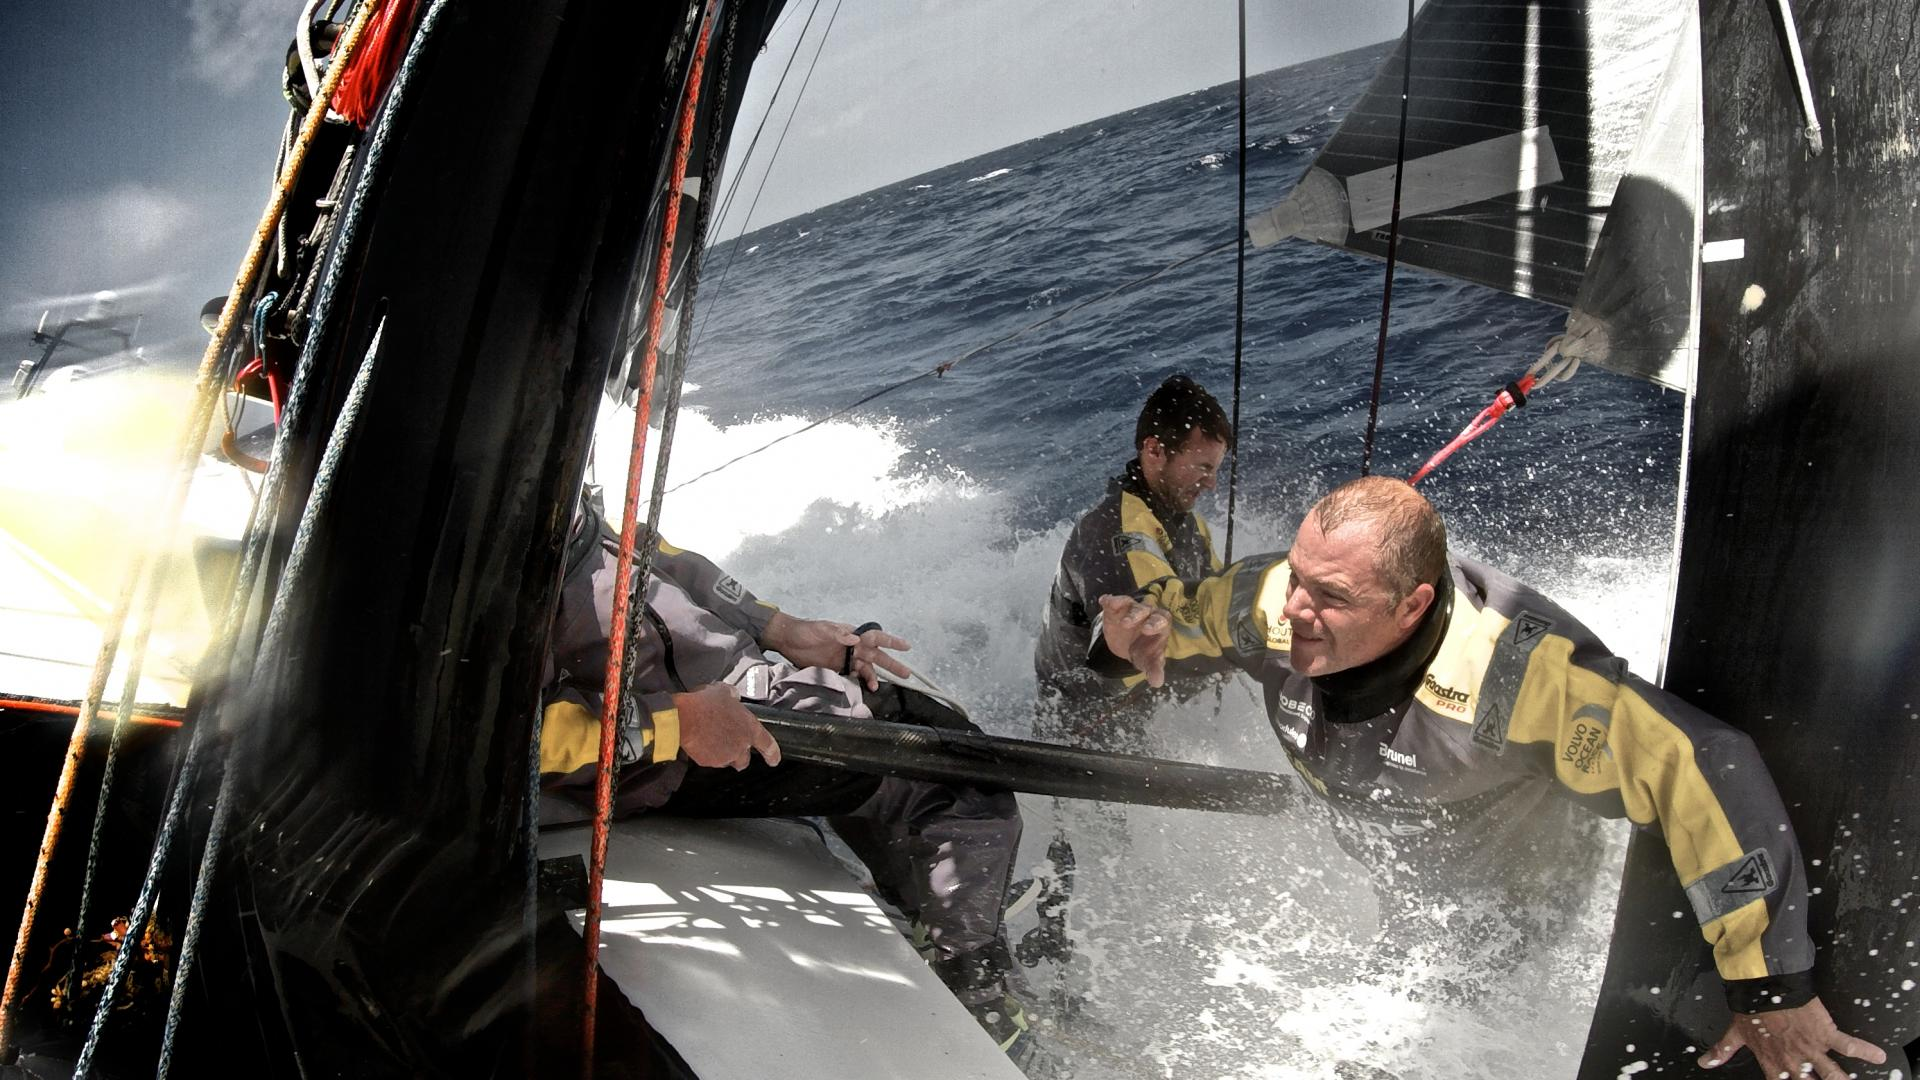 Team Brunel - Volvo Ocean Race ©Stefan Coppers